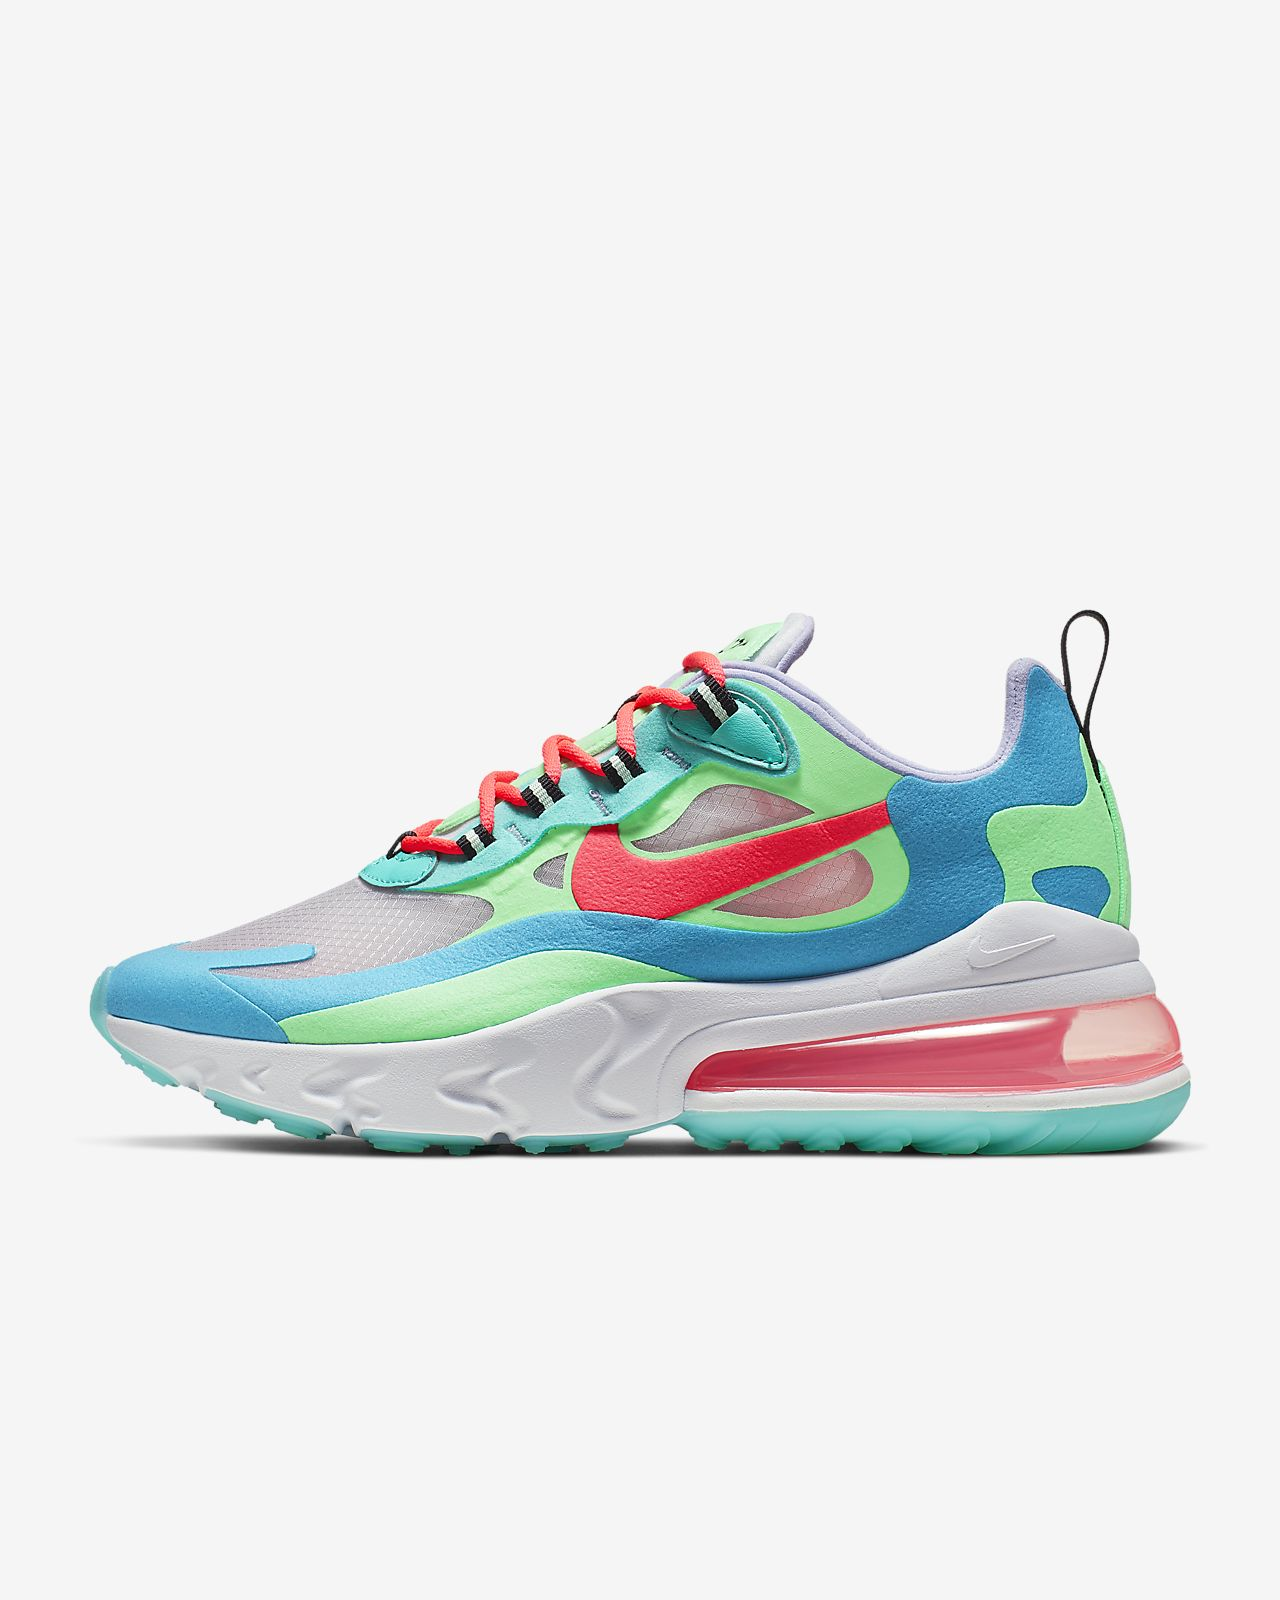 nike air max 270 react white pink blue